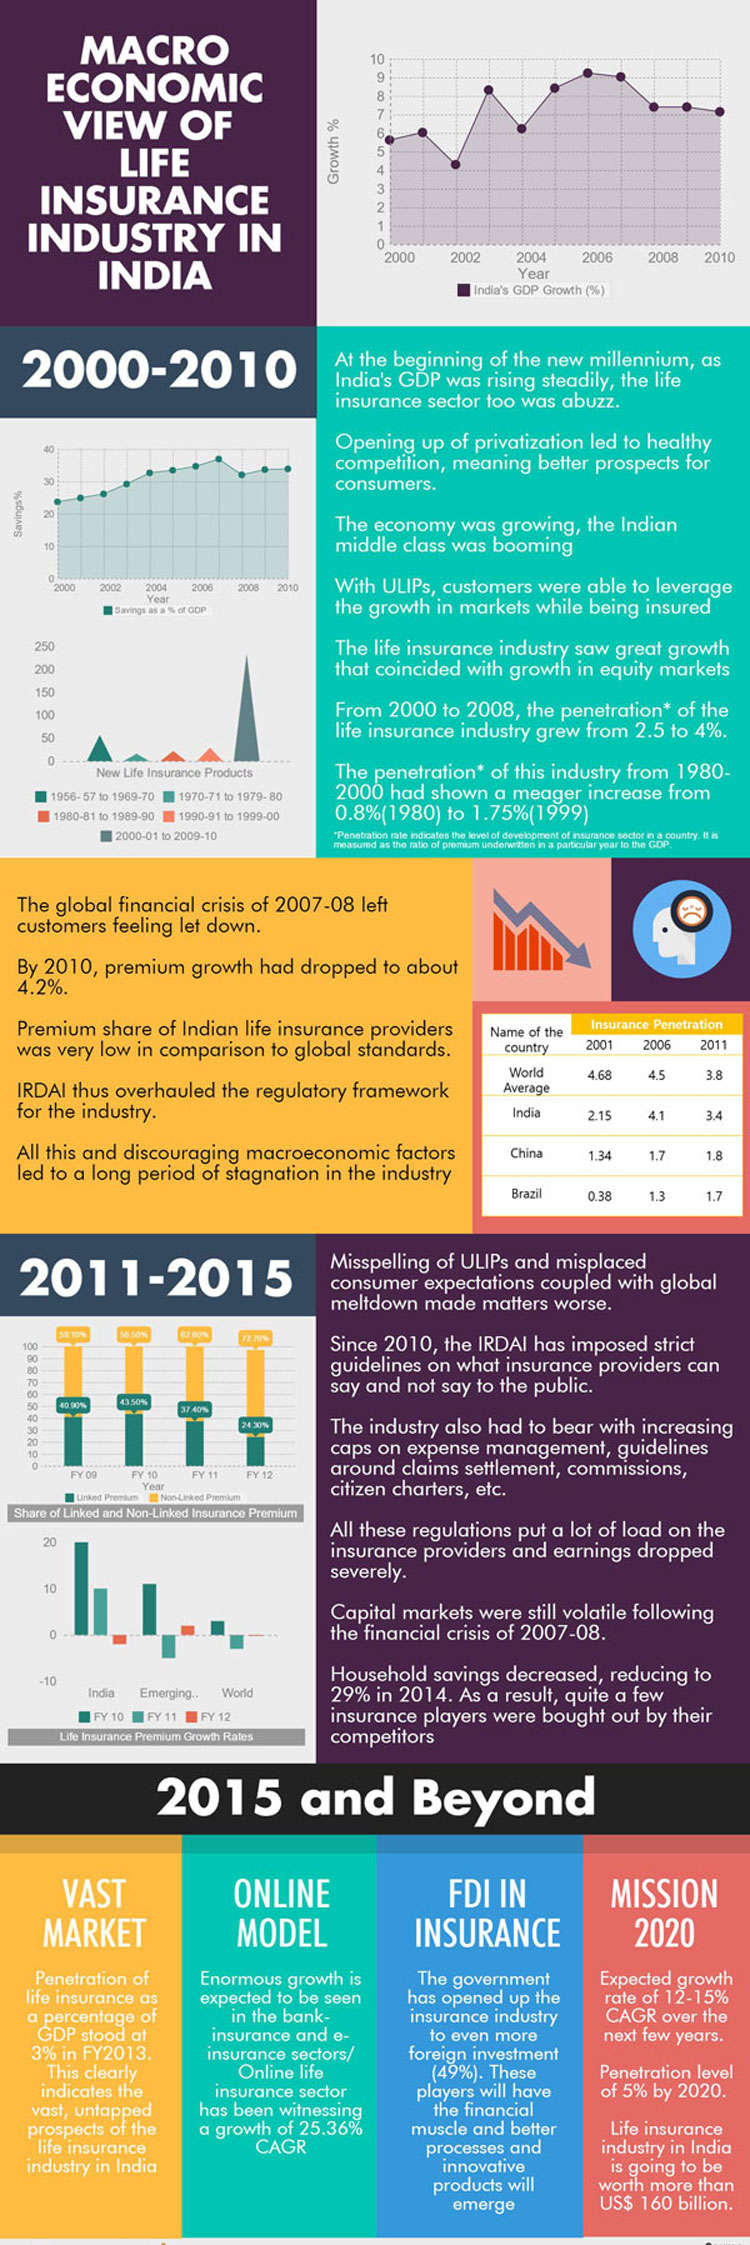 Macro-economic view of life insurance industry in India [Infographic]